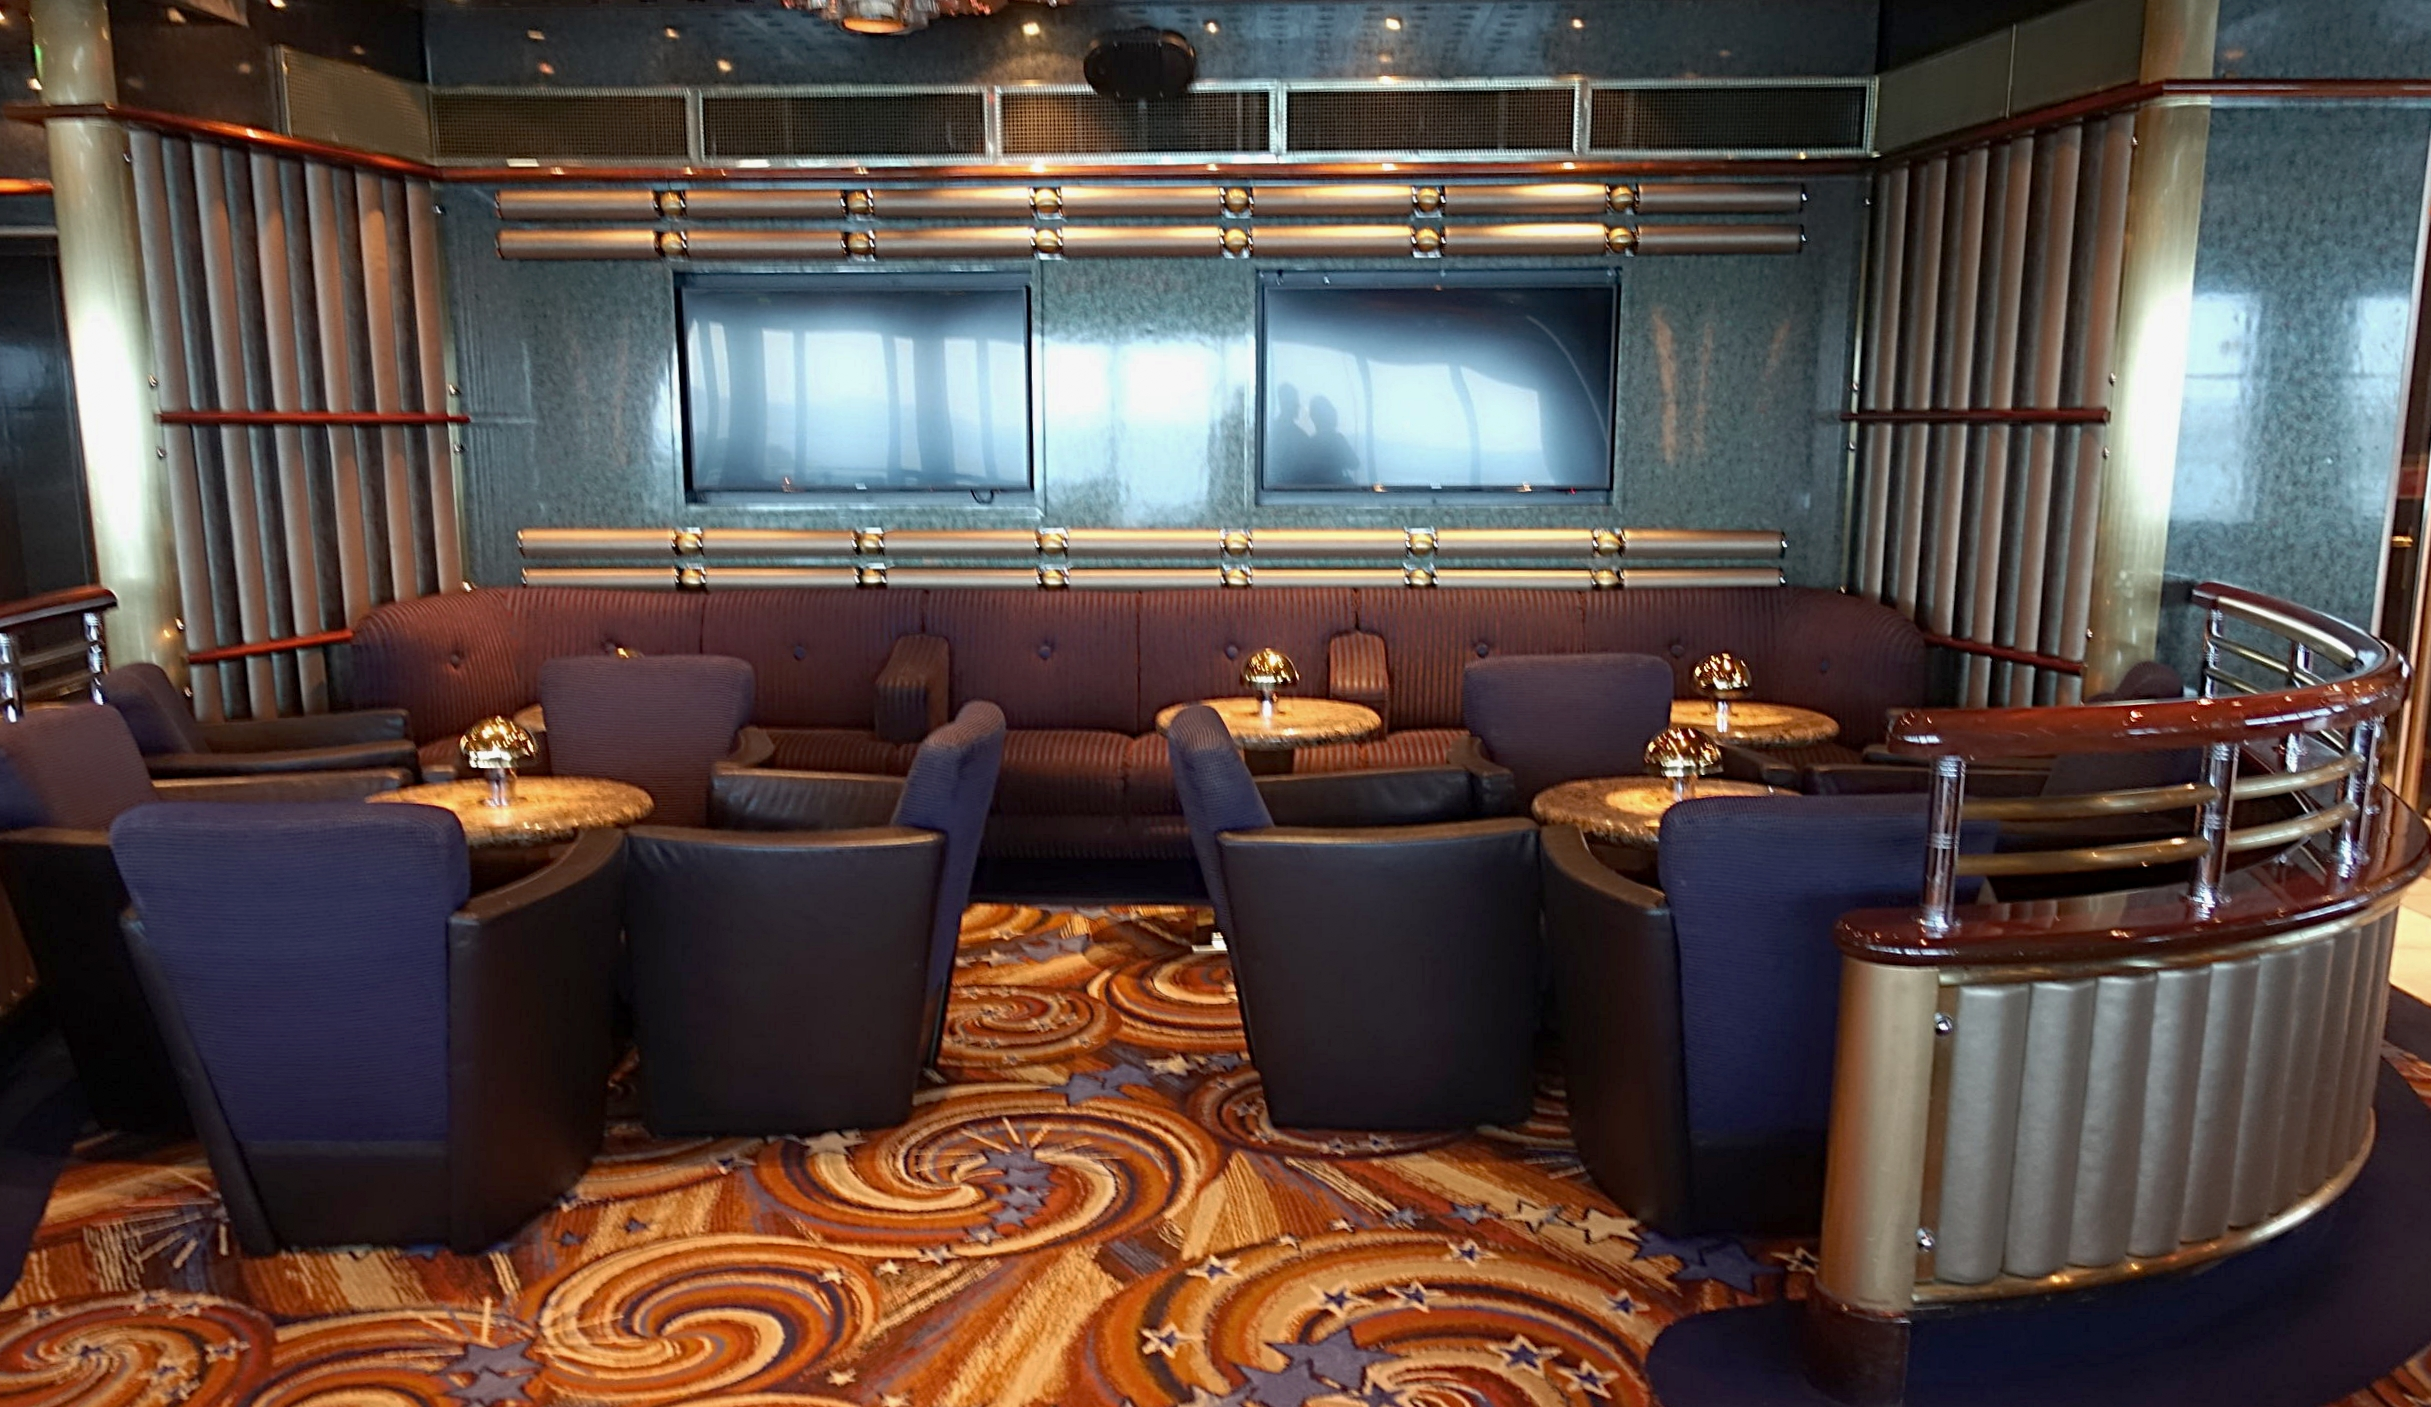 One of the Skywalkers seating areas.